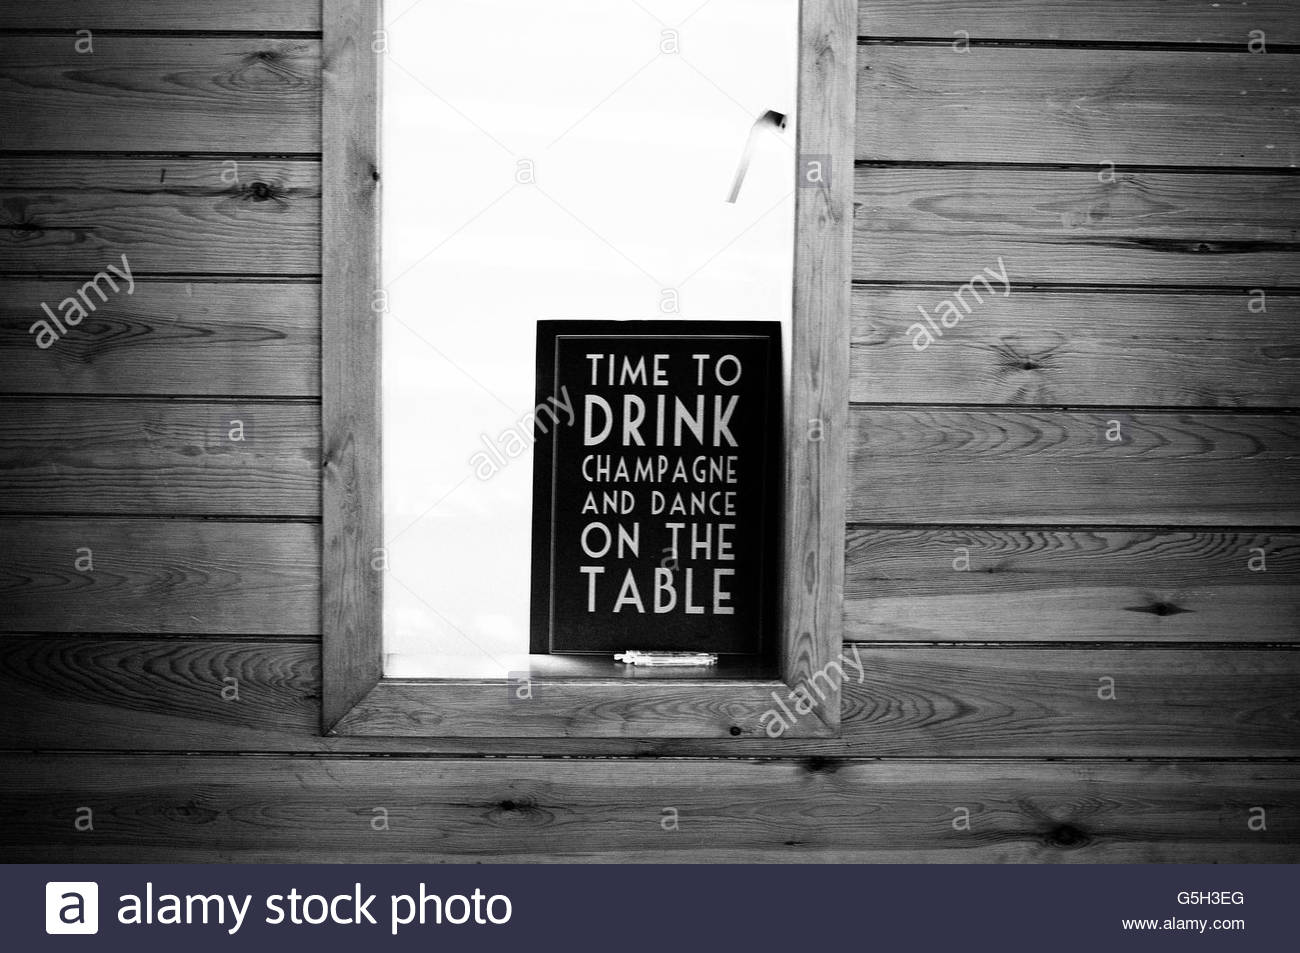 Comical sign inside window - Stock Image